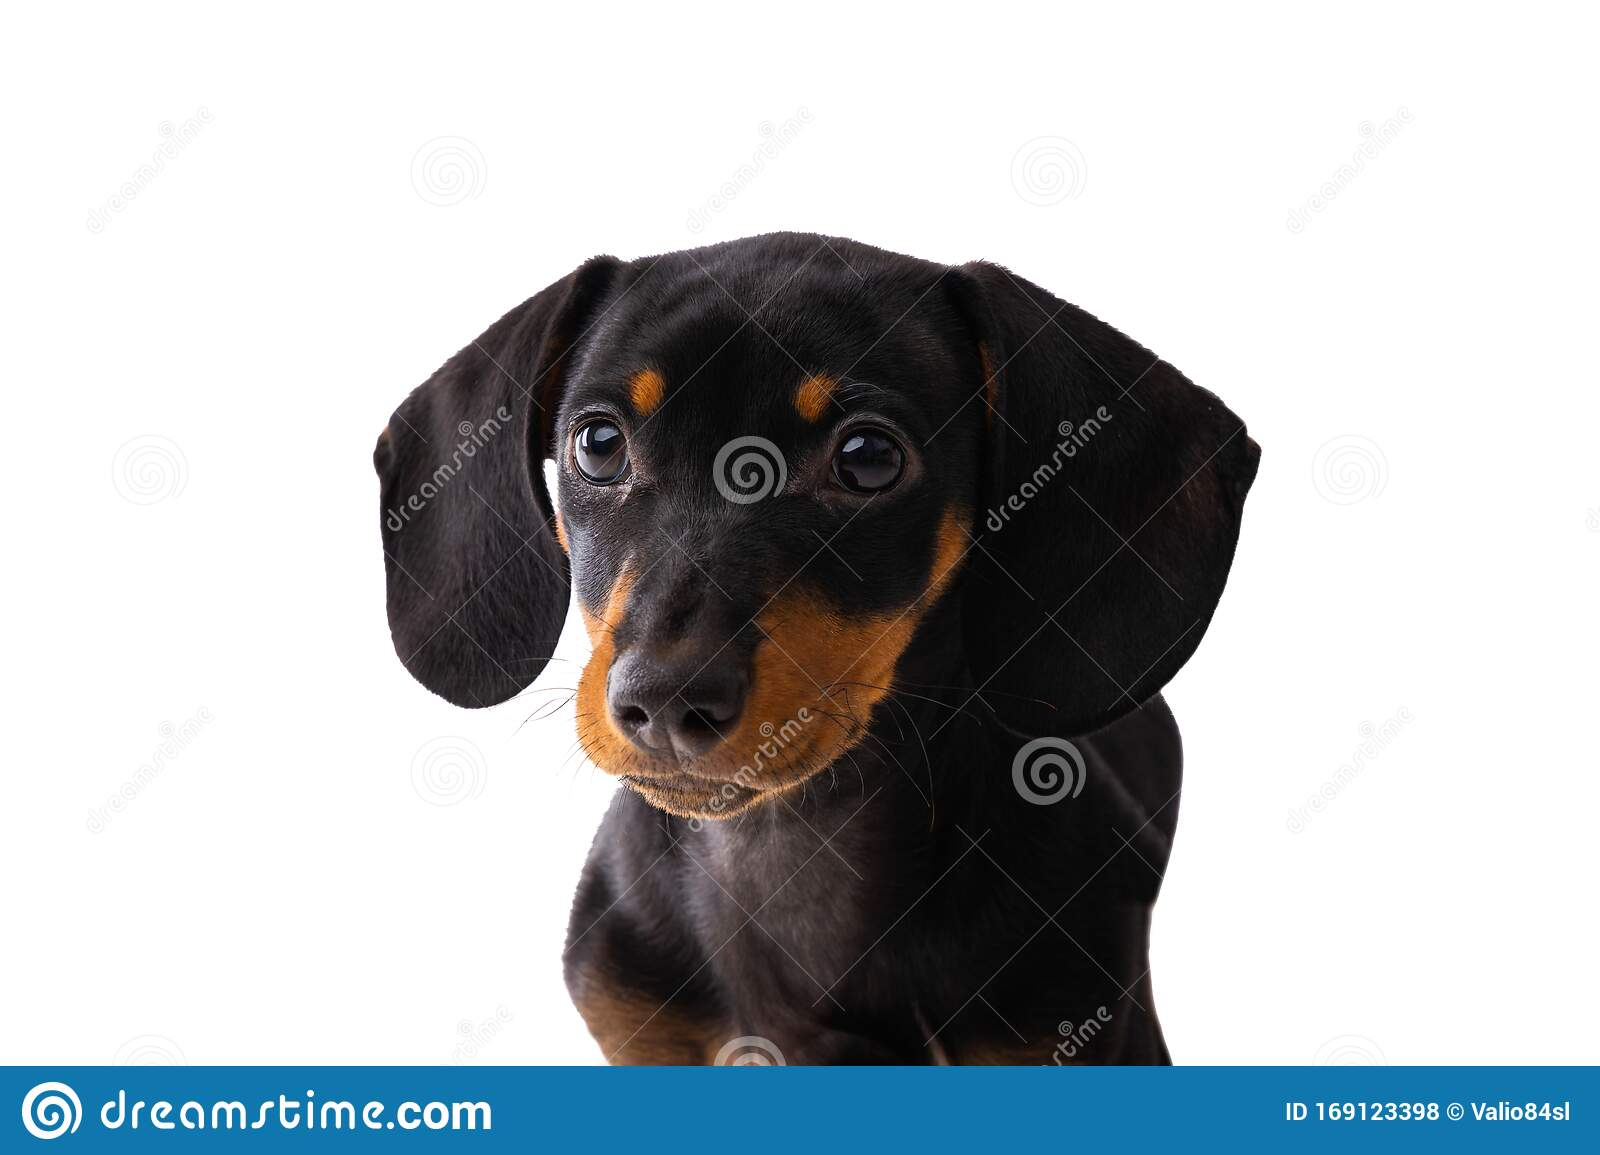 Funny Sausage Dog Dachshund Puppy Posing Isolated On White Background Stock Photo Image Of Background Puppy 169123398